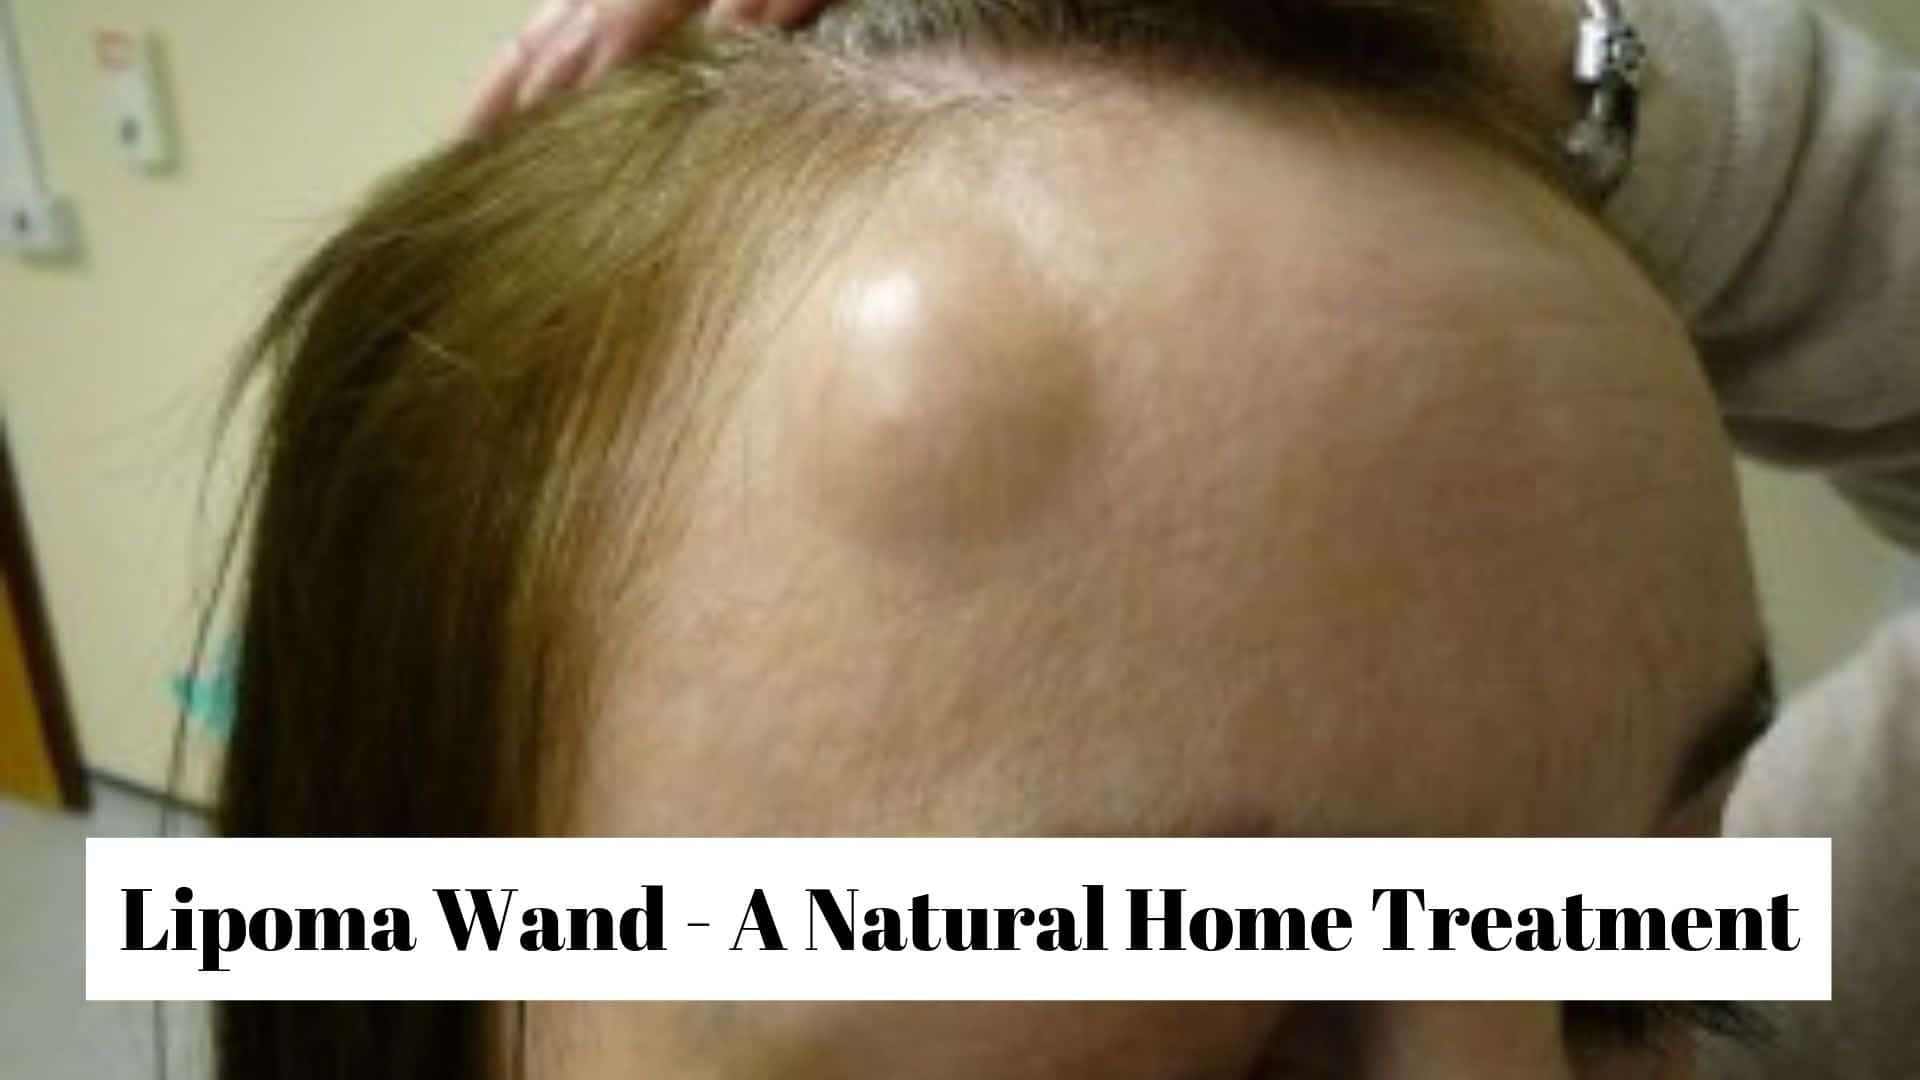 Lipoma Wand - A Natural Home Treatment